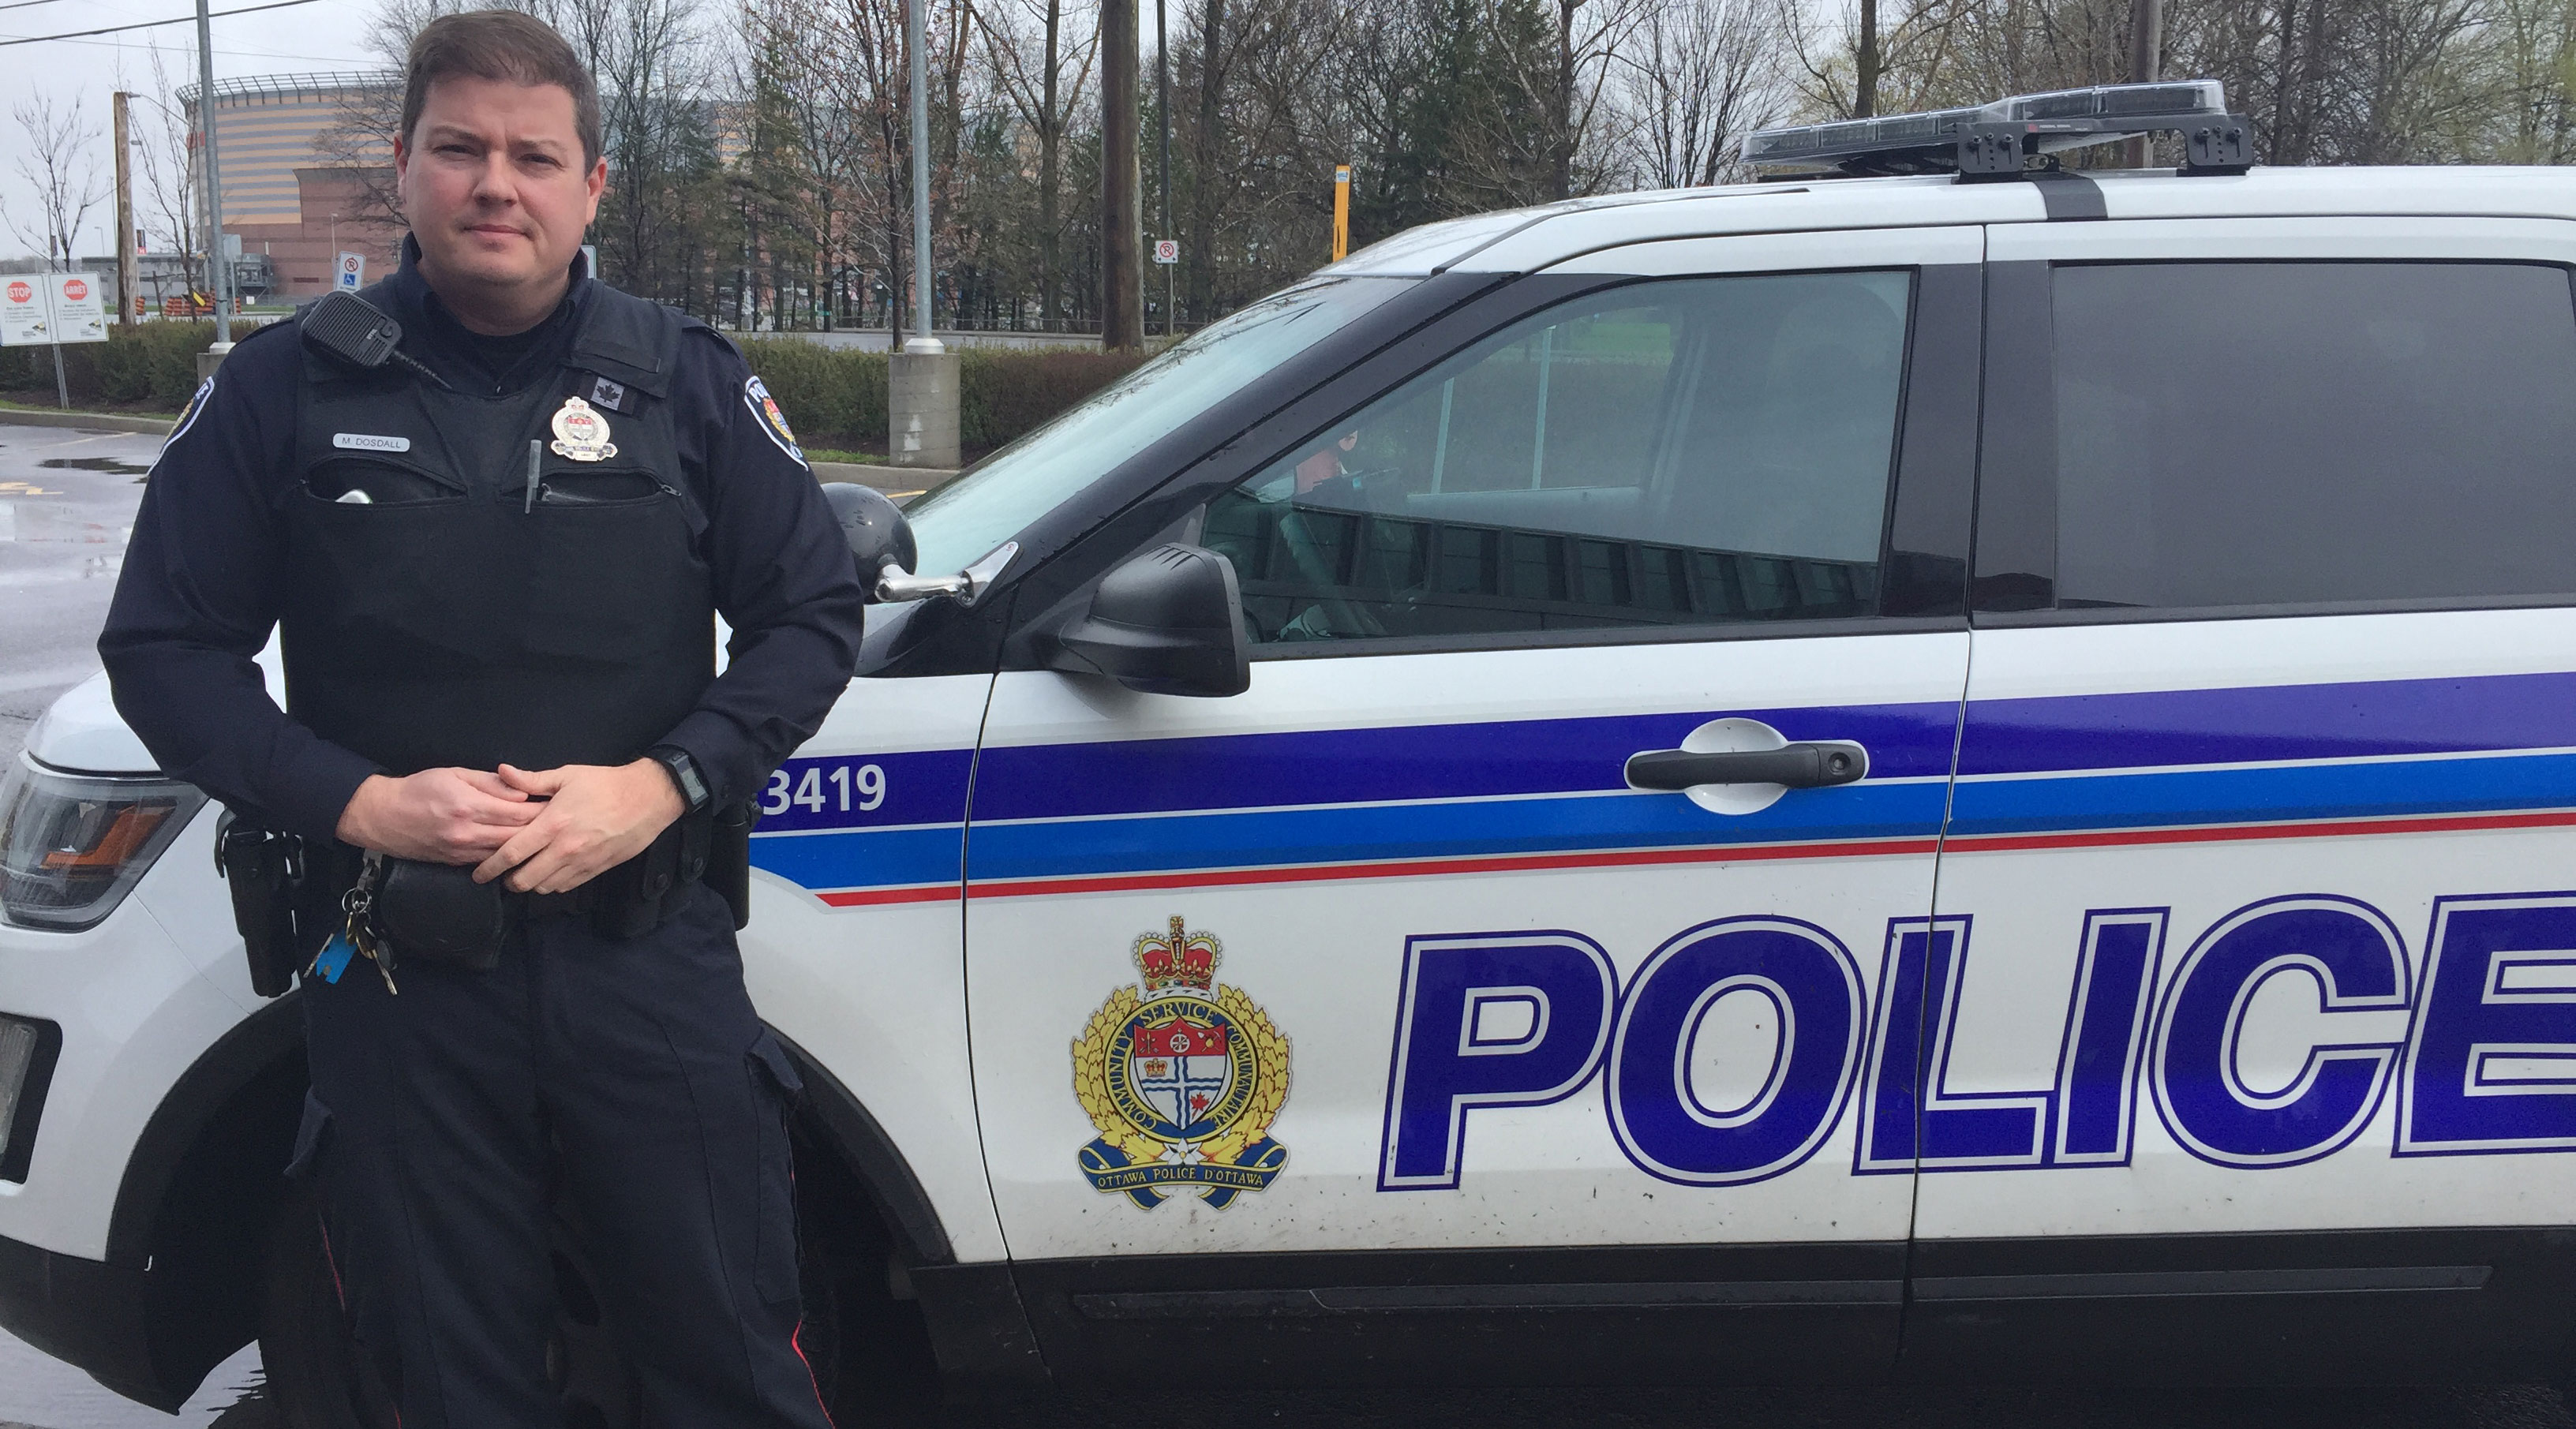 Cst. Mike Dosdall of the Ottawa Police. He's one of several officers who regularly patrol the Stittsville area. Photo by Devyn Barrie.